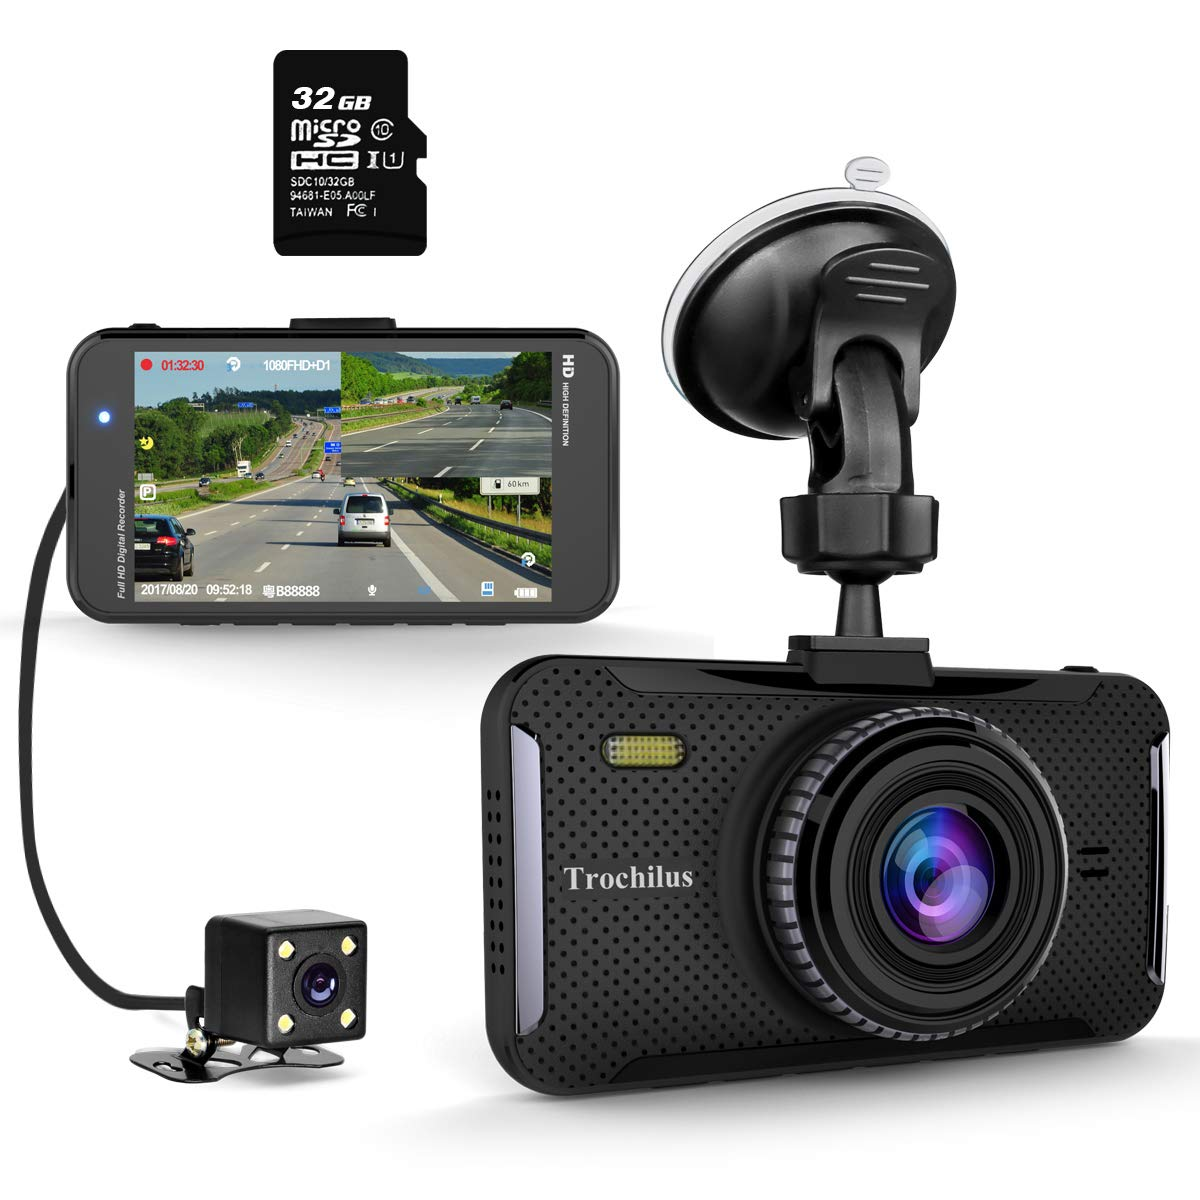 Trochilus Dual Dash Cam 4″ 1080P Front and Rear Dash Cams, 170 Degree Wide Angle Car Camera with G-Sensor, WDR, Loop Recording, Parking Monitor, Motion Detection, 32GB SD Card including